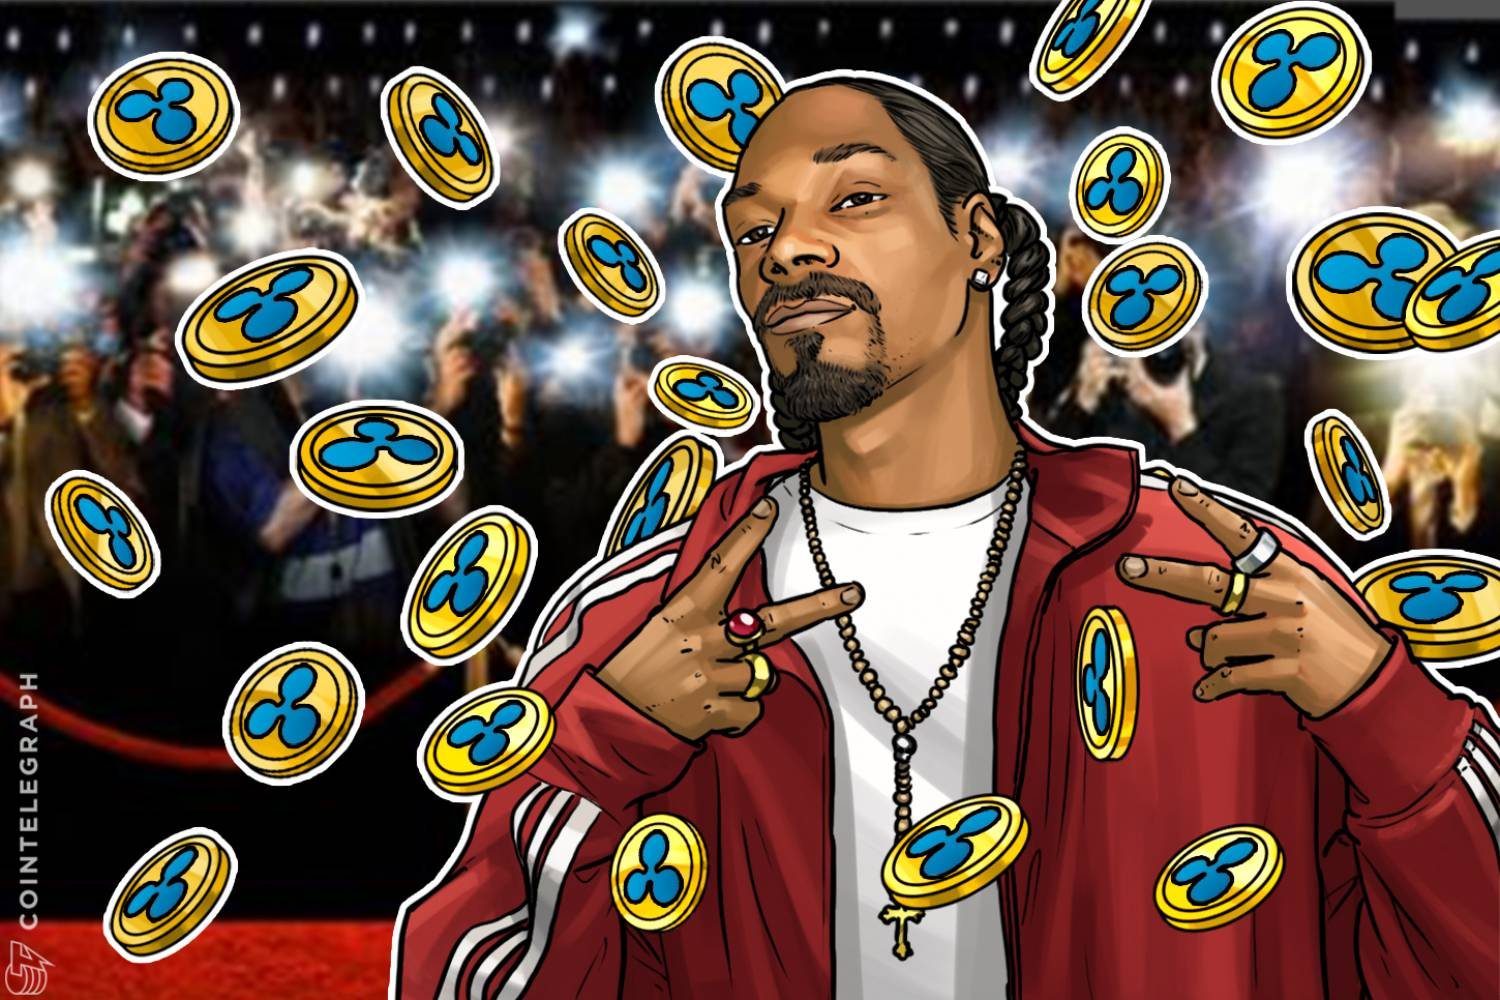 Snoop Dogg with Ripple